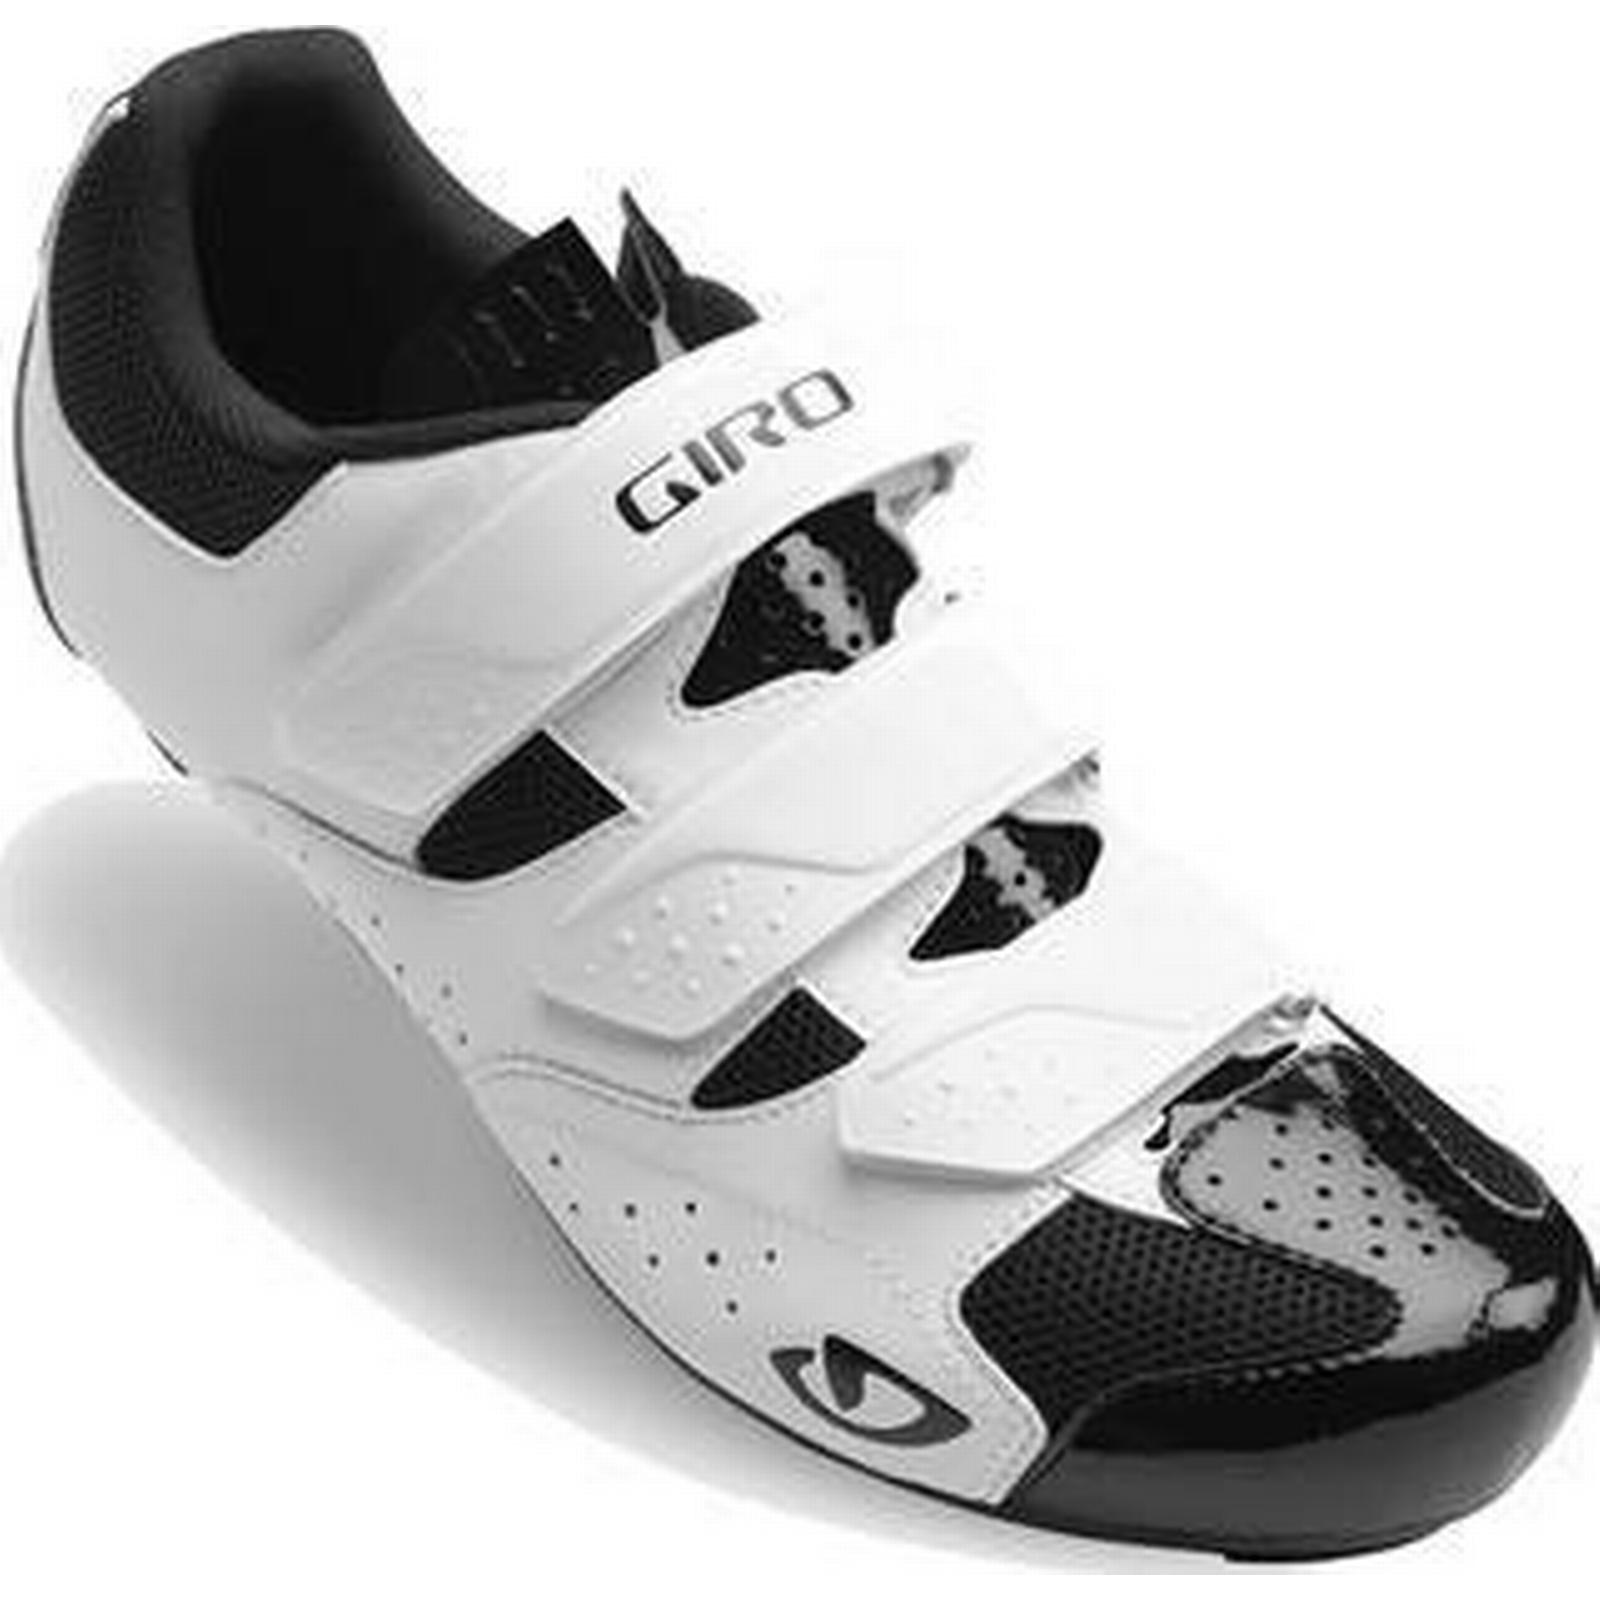 Giro Techne | Road Cycling Shoes | Techne White/Black - 42 e57c44